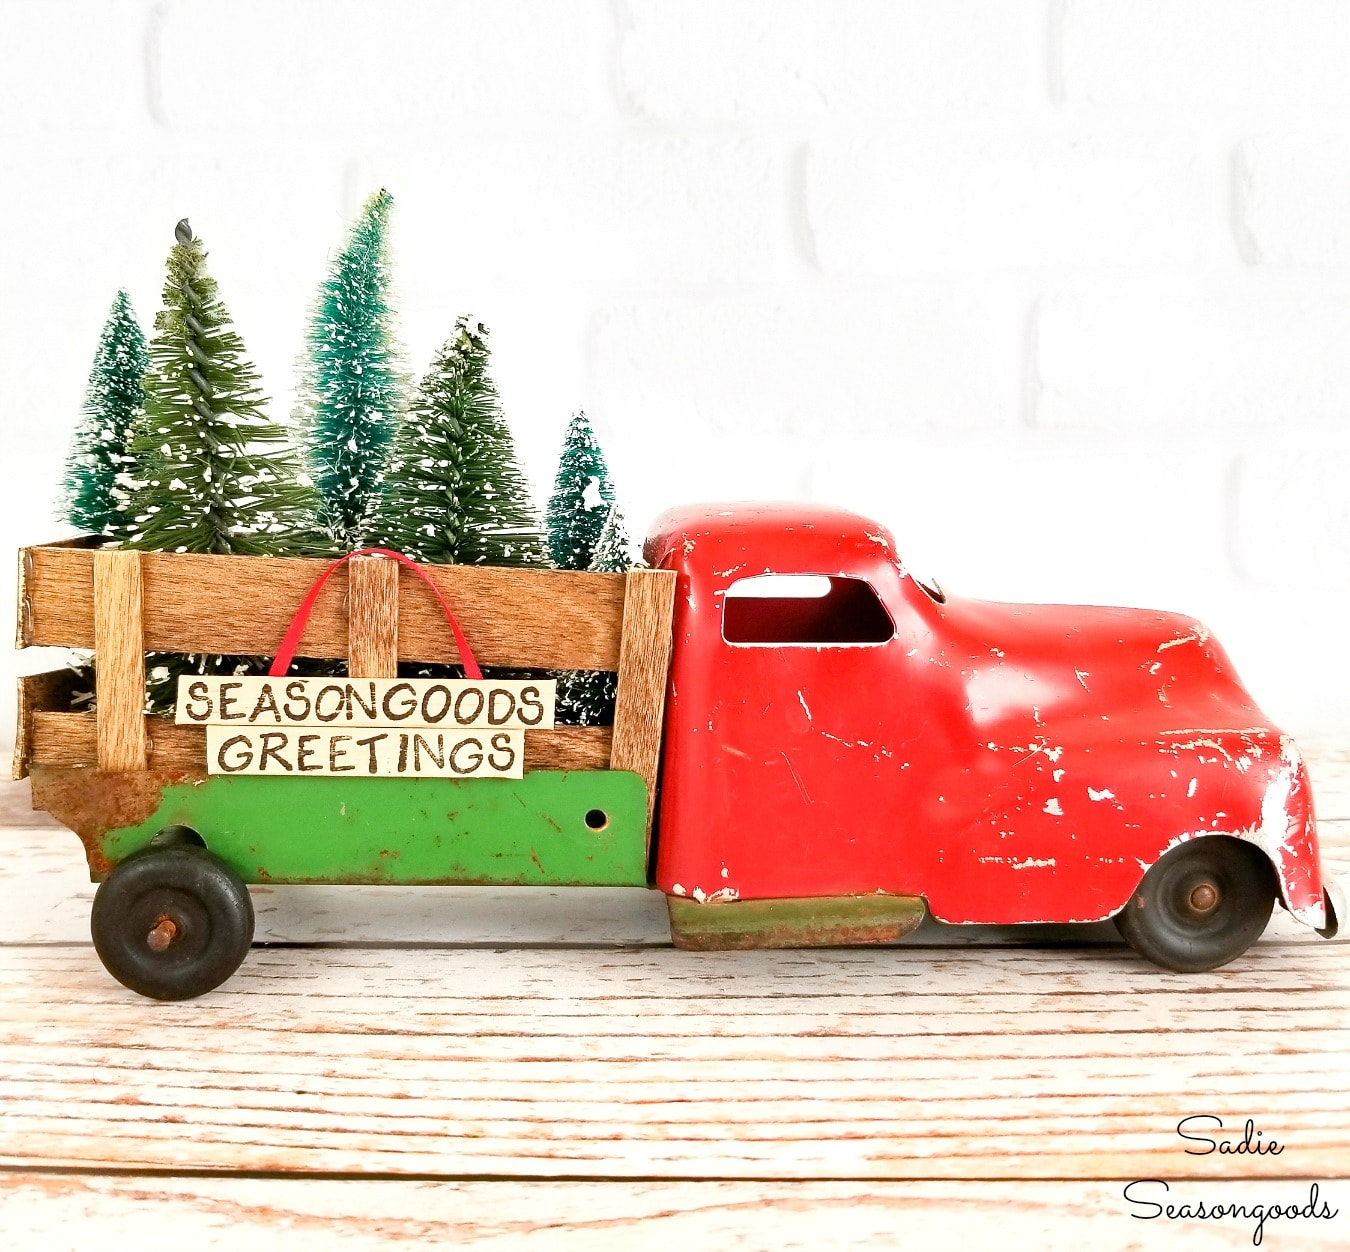 Upcycling a Toy Truck as Christmas Truck Decor